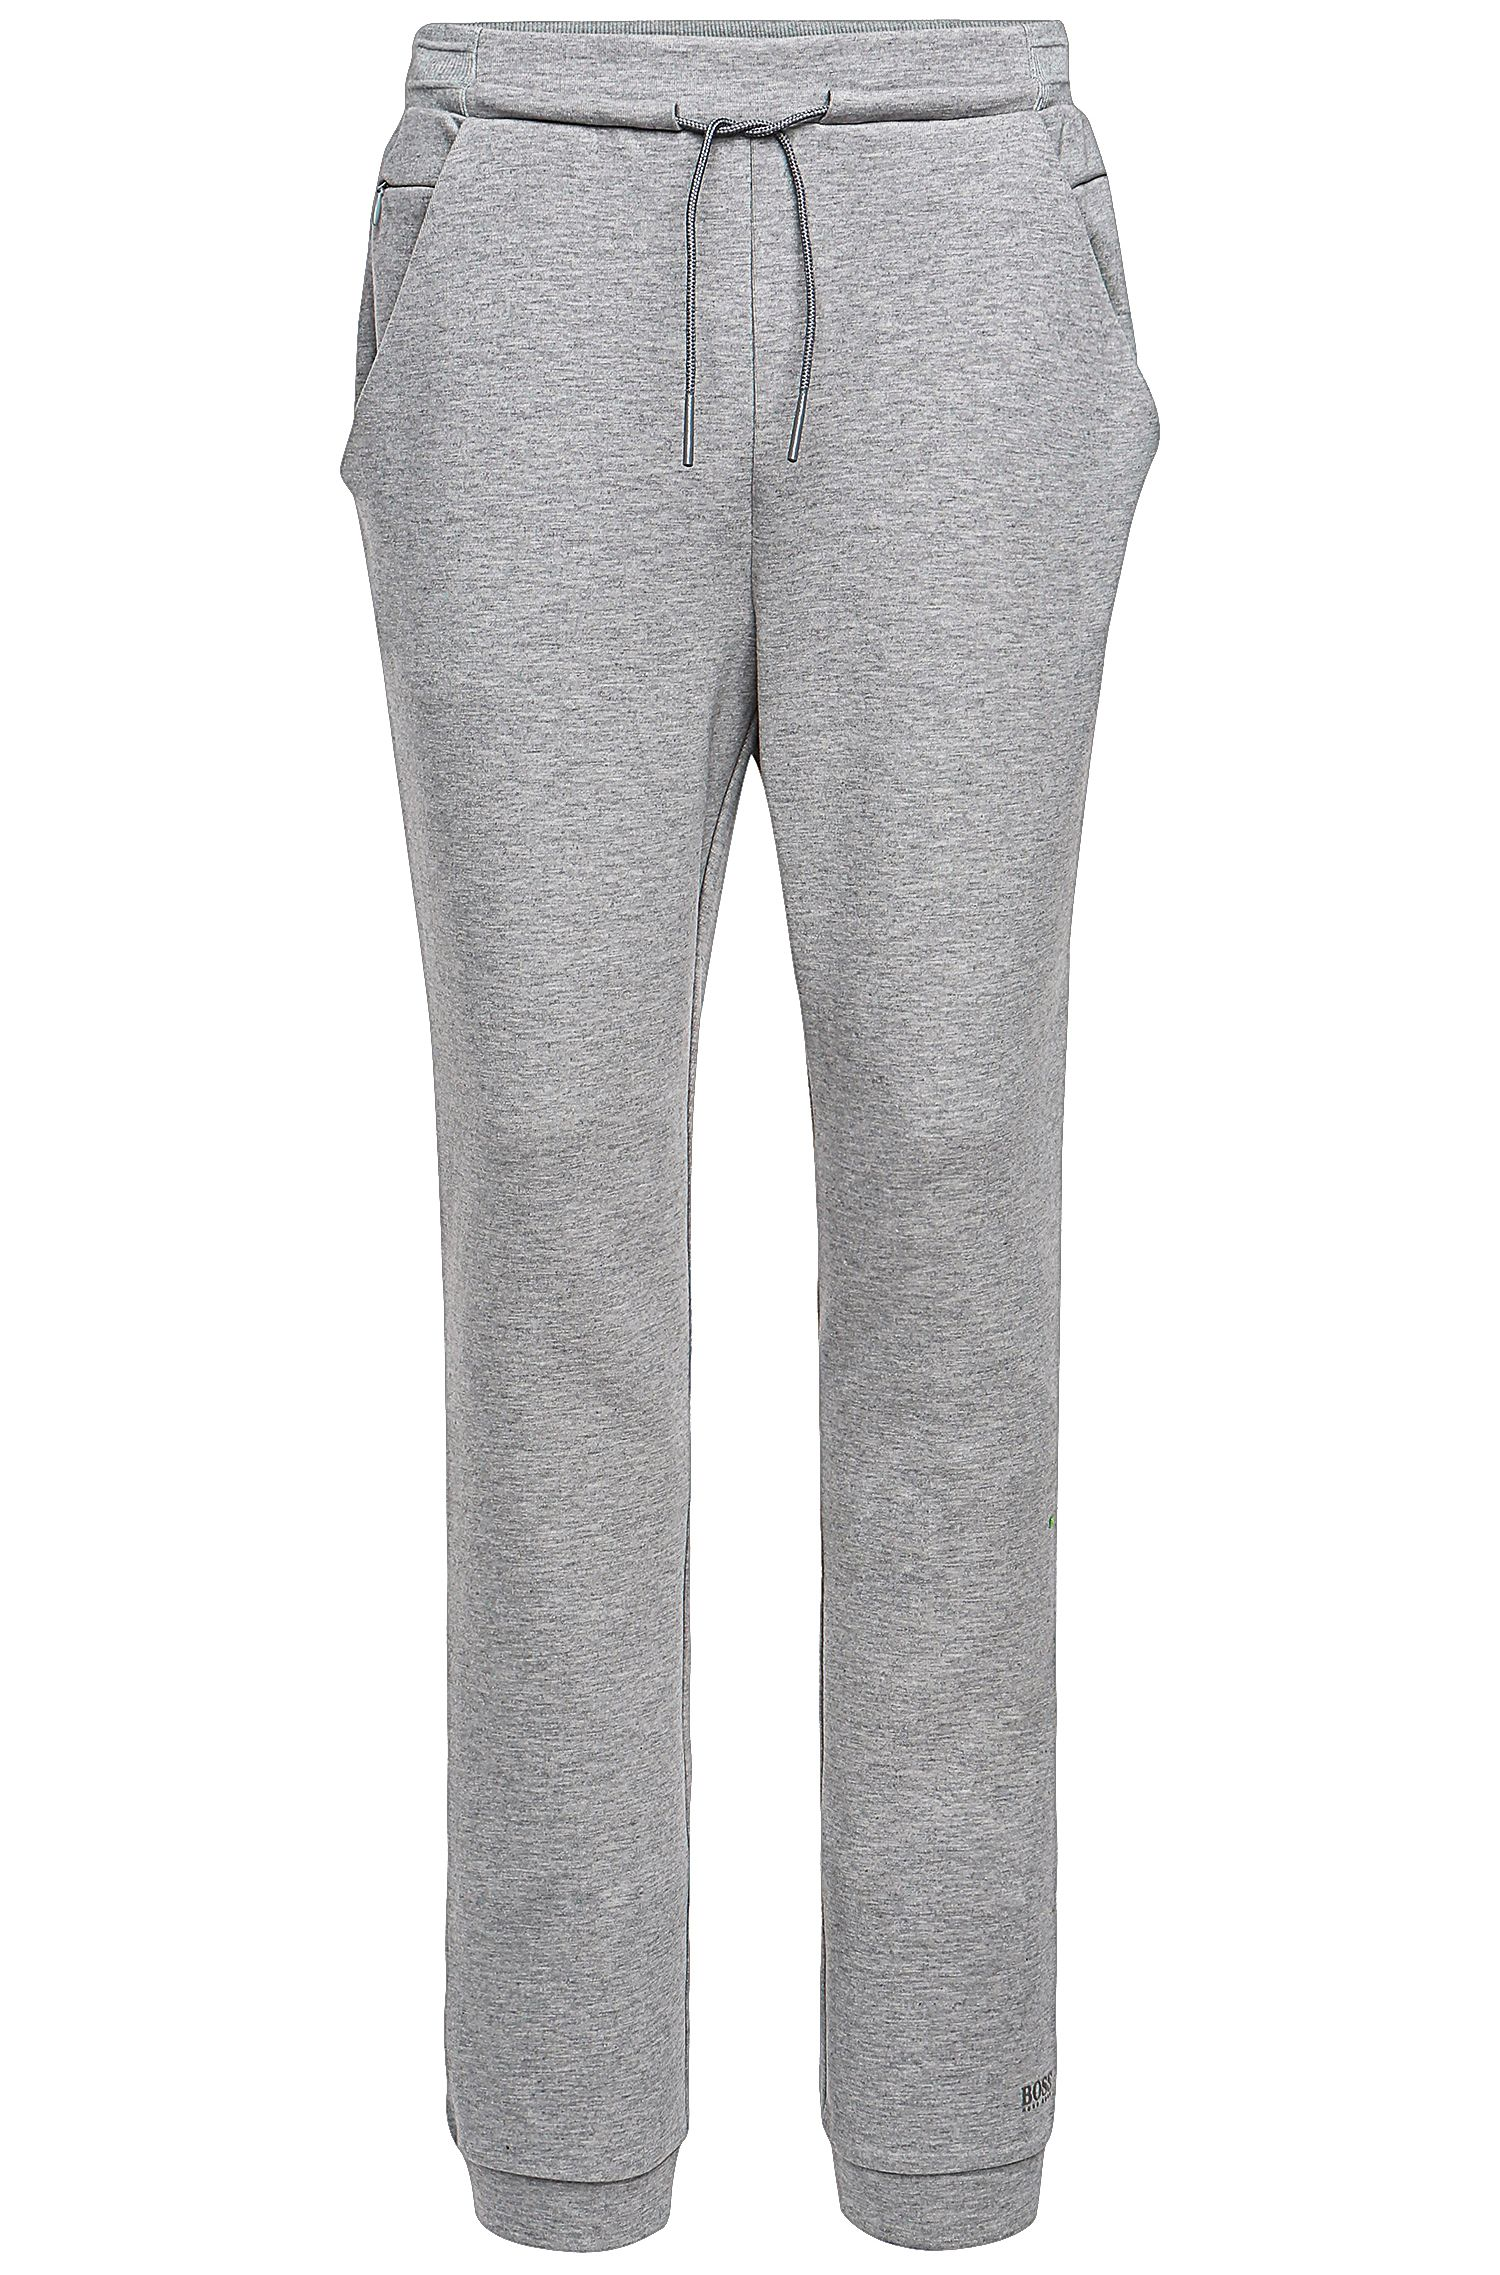 'Hyron' | Cotton Blend Sweat Pants